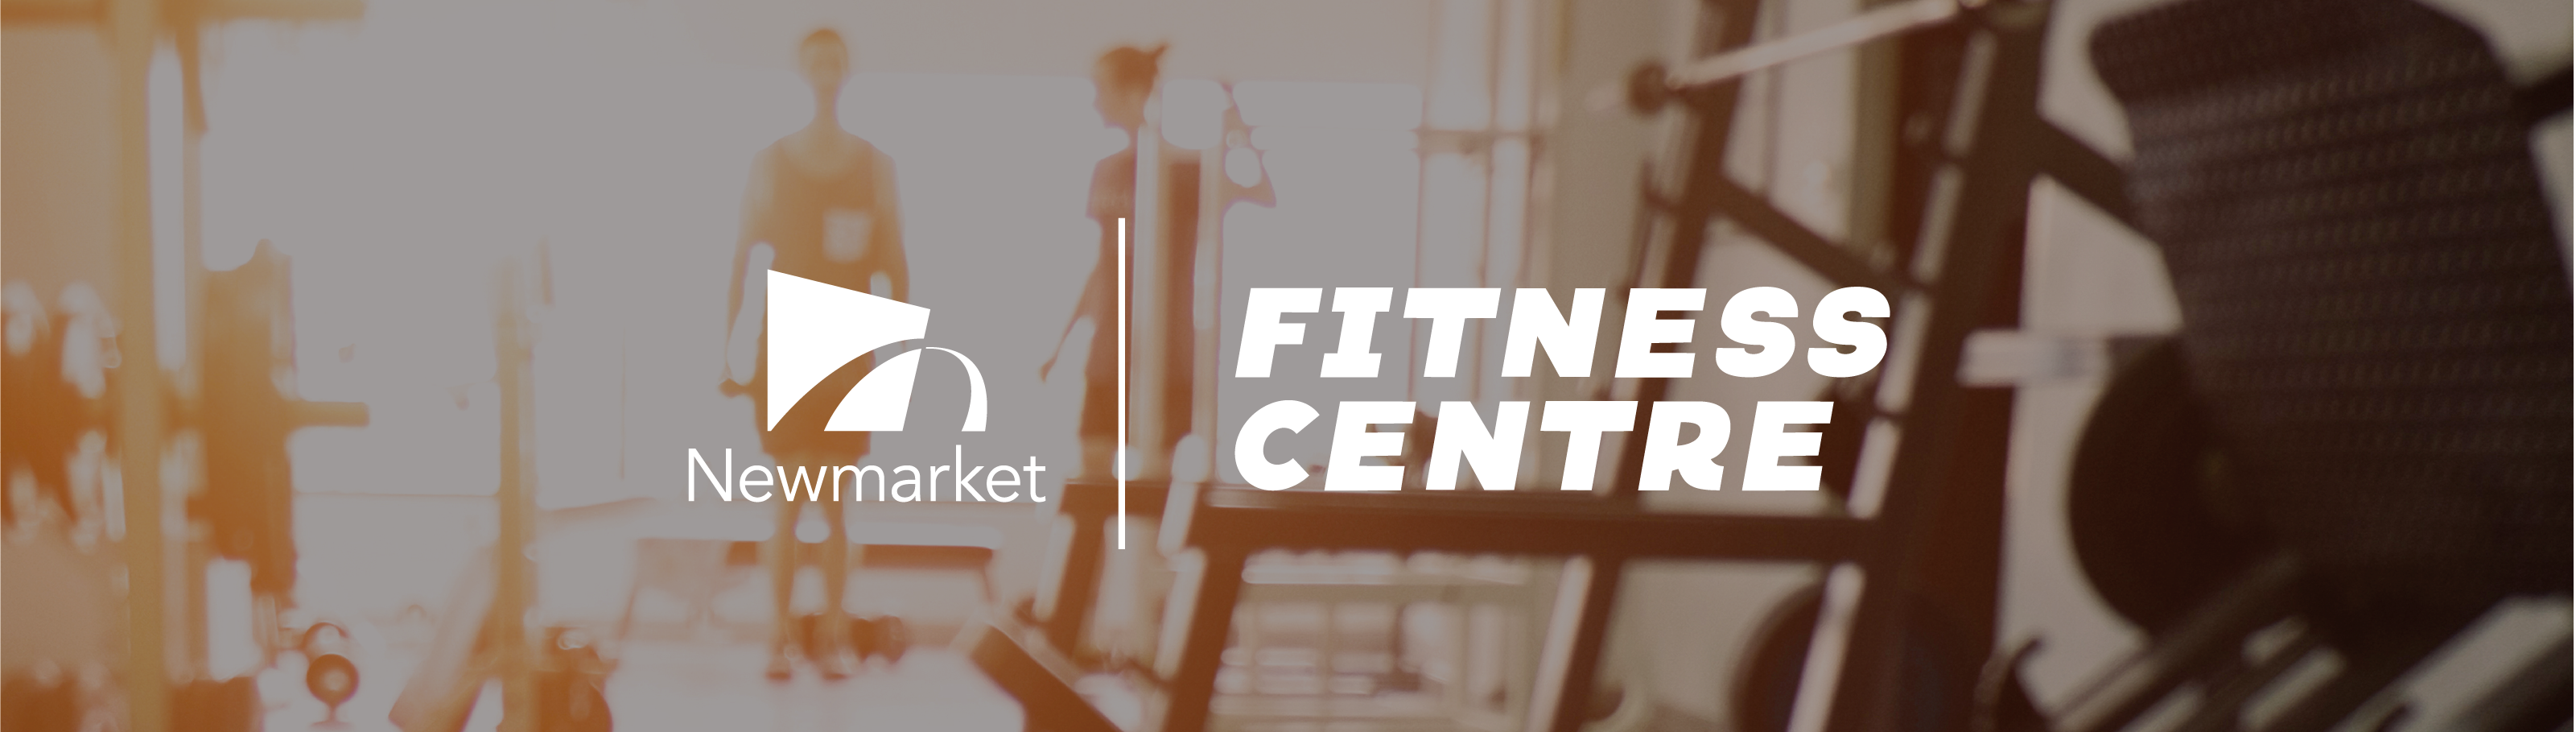 image of people using fitness centre with text that reads fitness centre